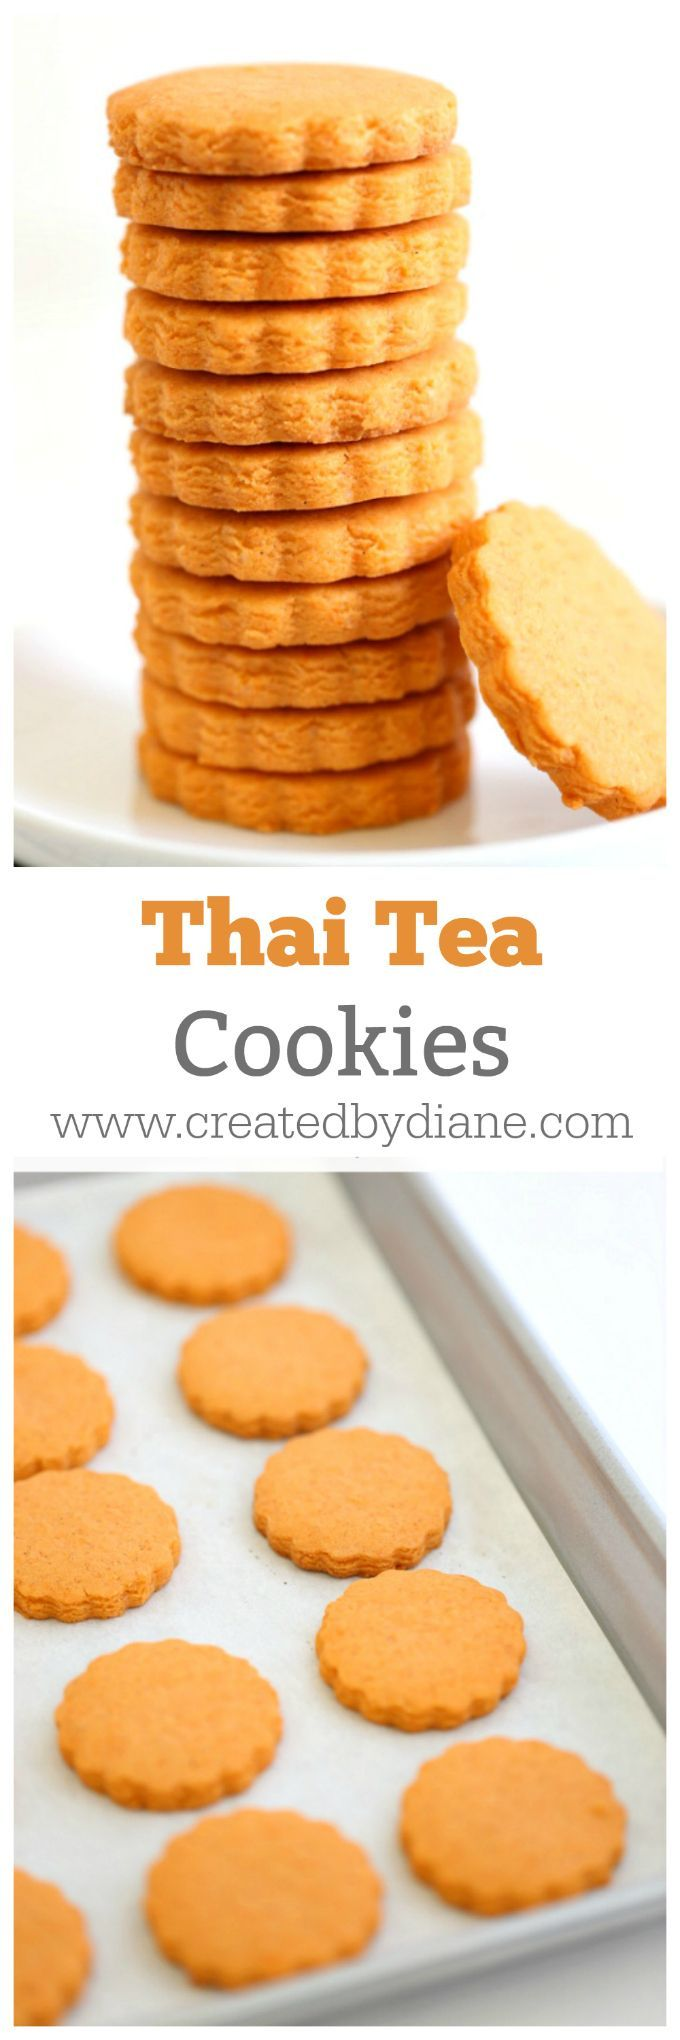 Thai Tea Cookie Recipe Easy and Delicious Cookie www.createdbydiane.com